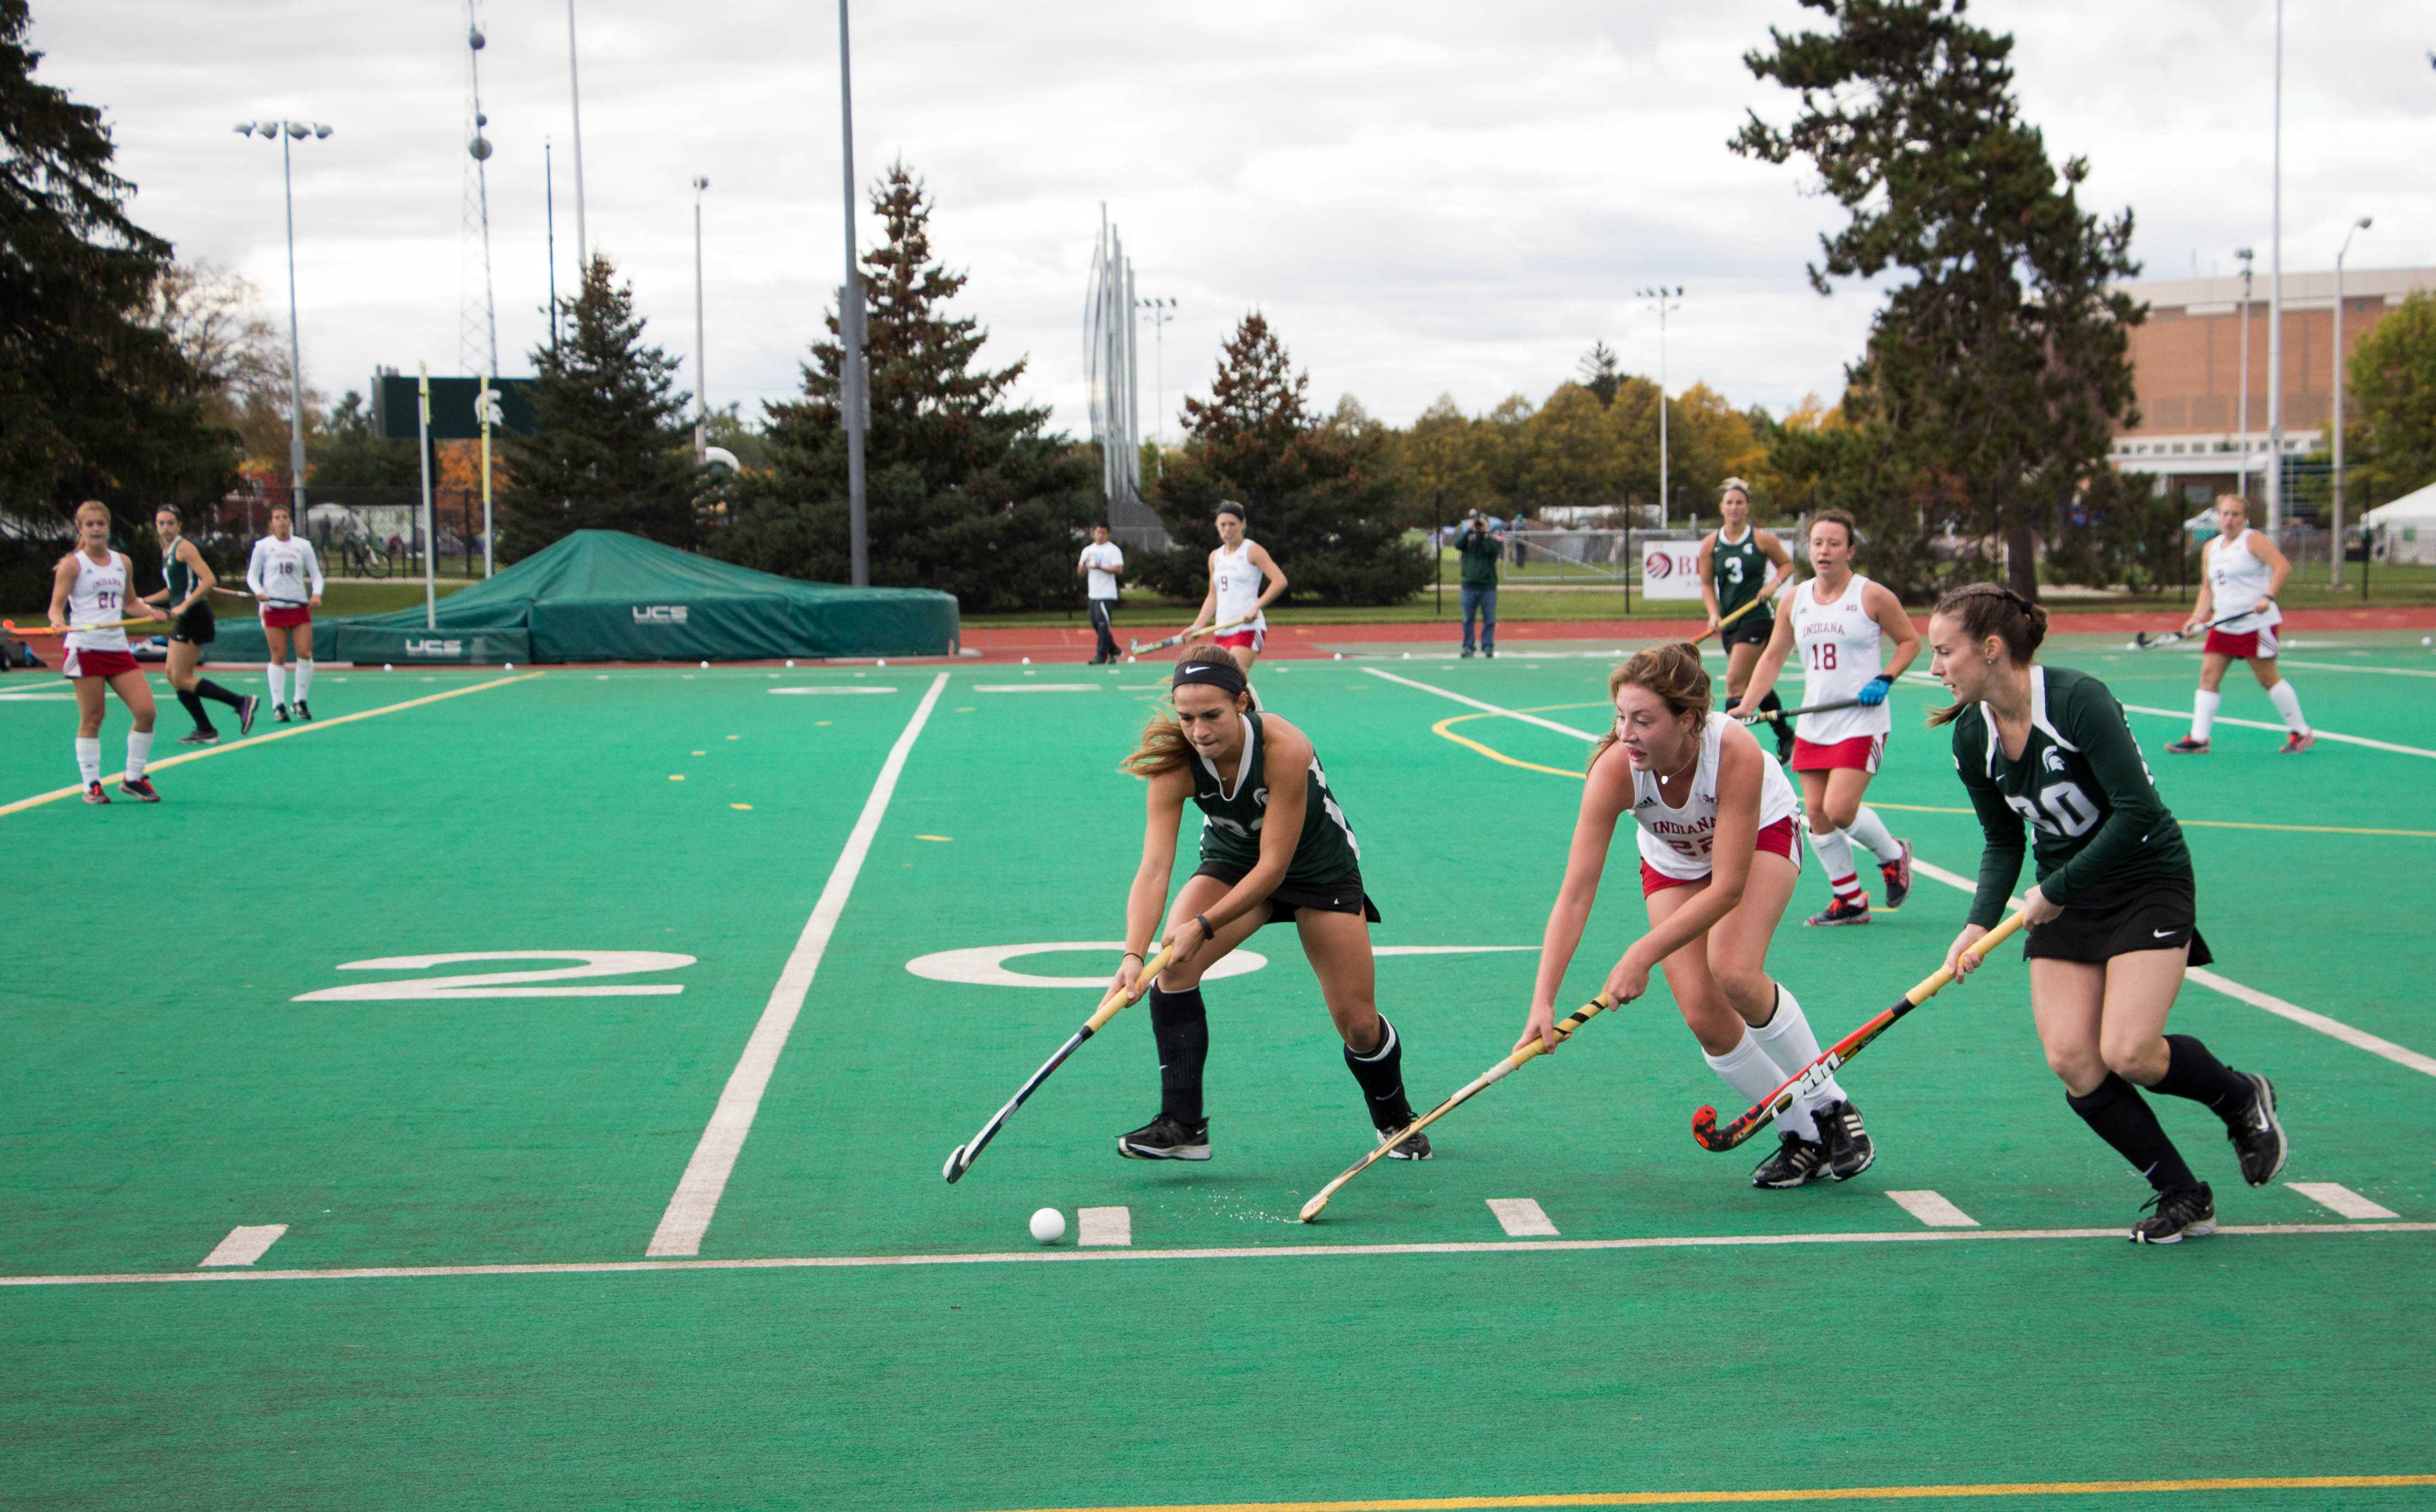 Michigan State's Field Hockey Season Comes to a Close